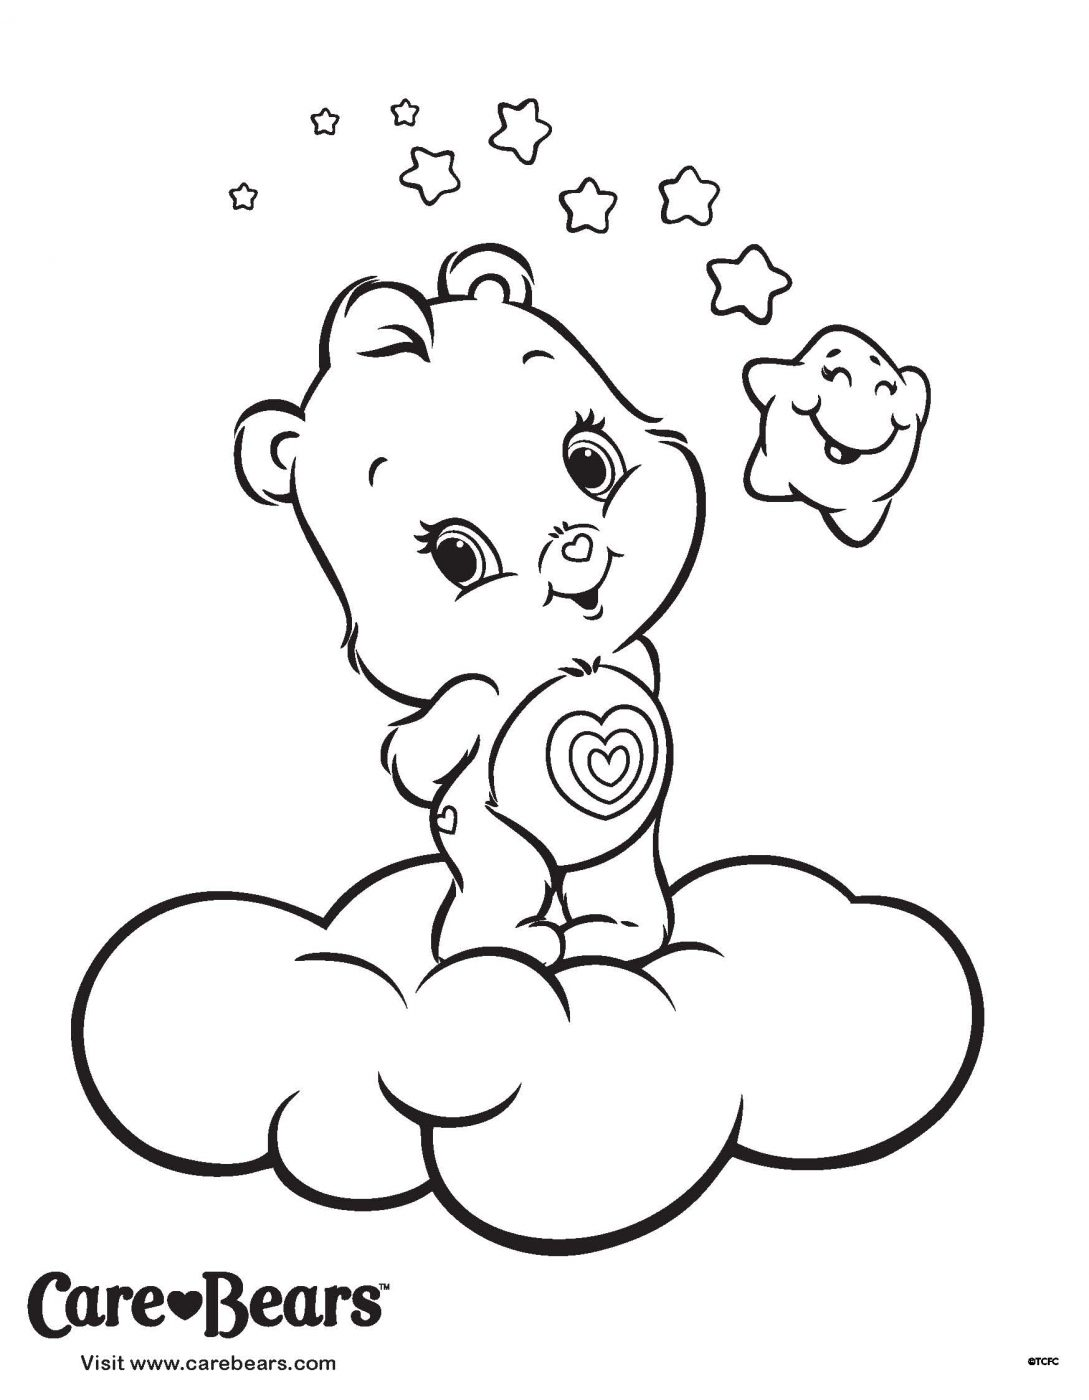 Care Bears Care-a-Lot! {Wonderheart Coloring Page}